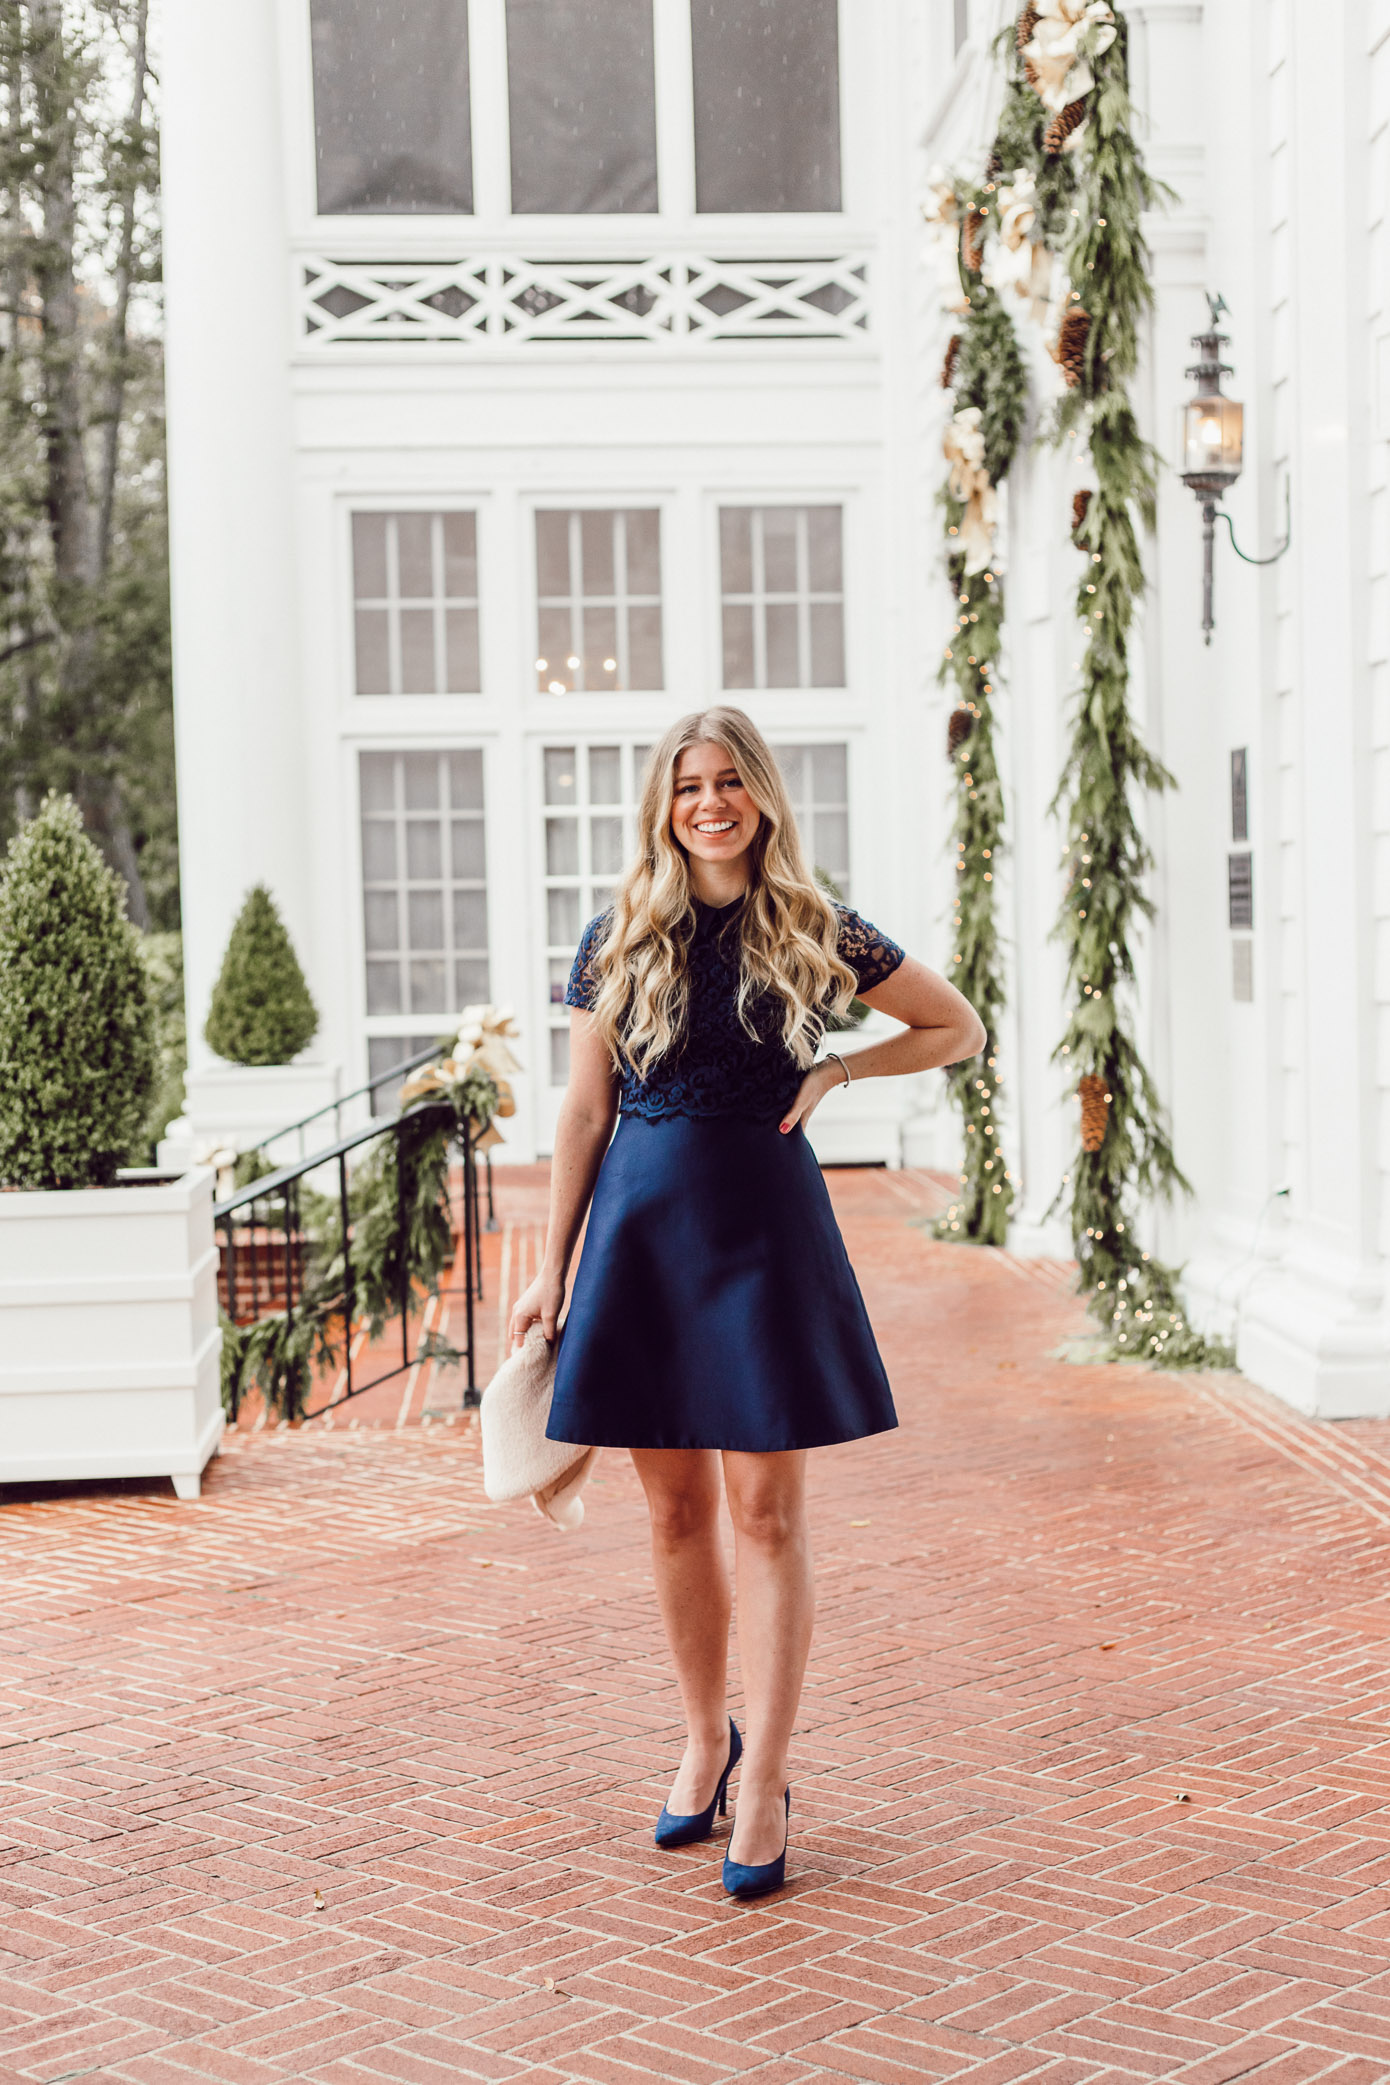 Finding the Perfect Holiday Party Dress with Rent the Runway on Louella Reese Blog   Navy Lace Mini Dress, Christmas Party Dress